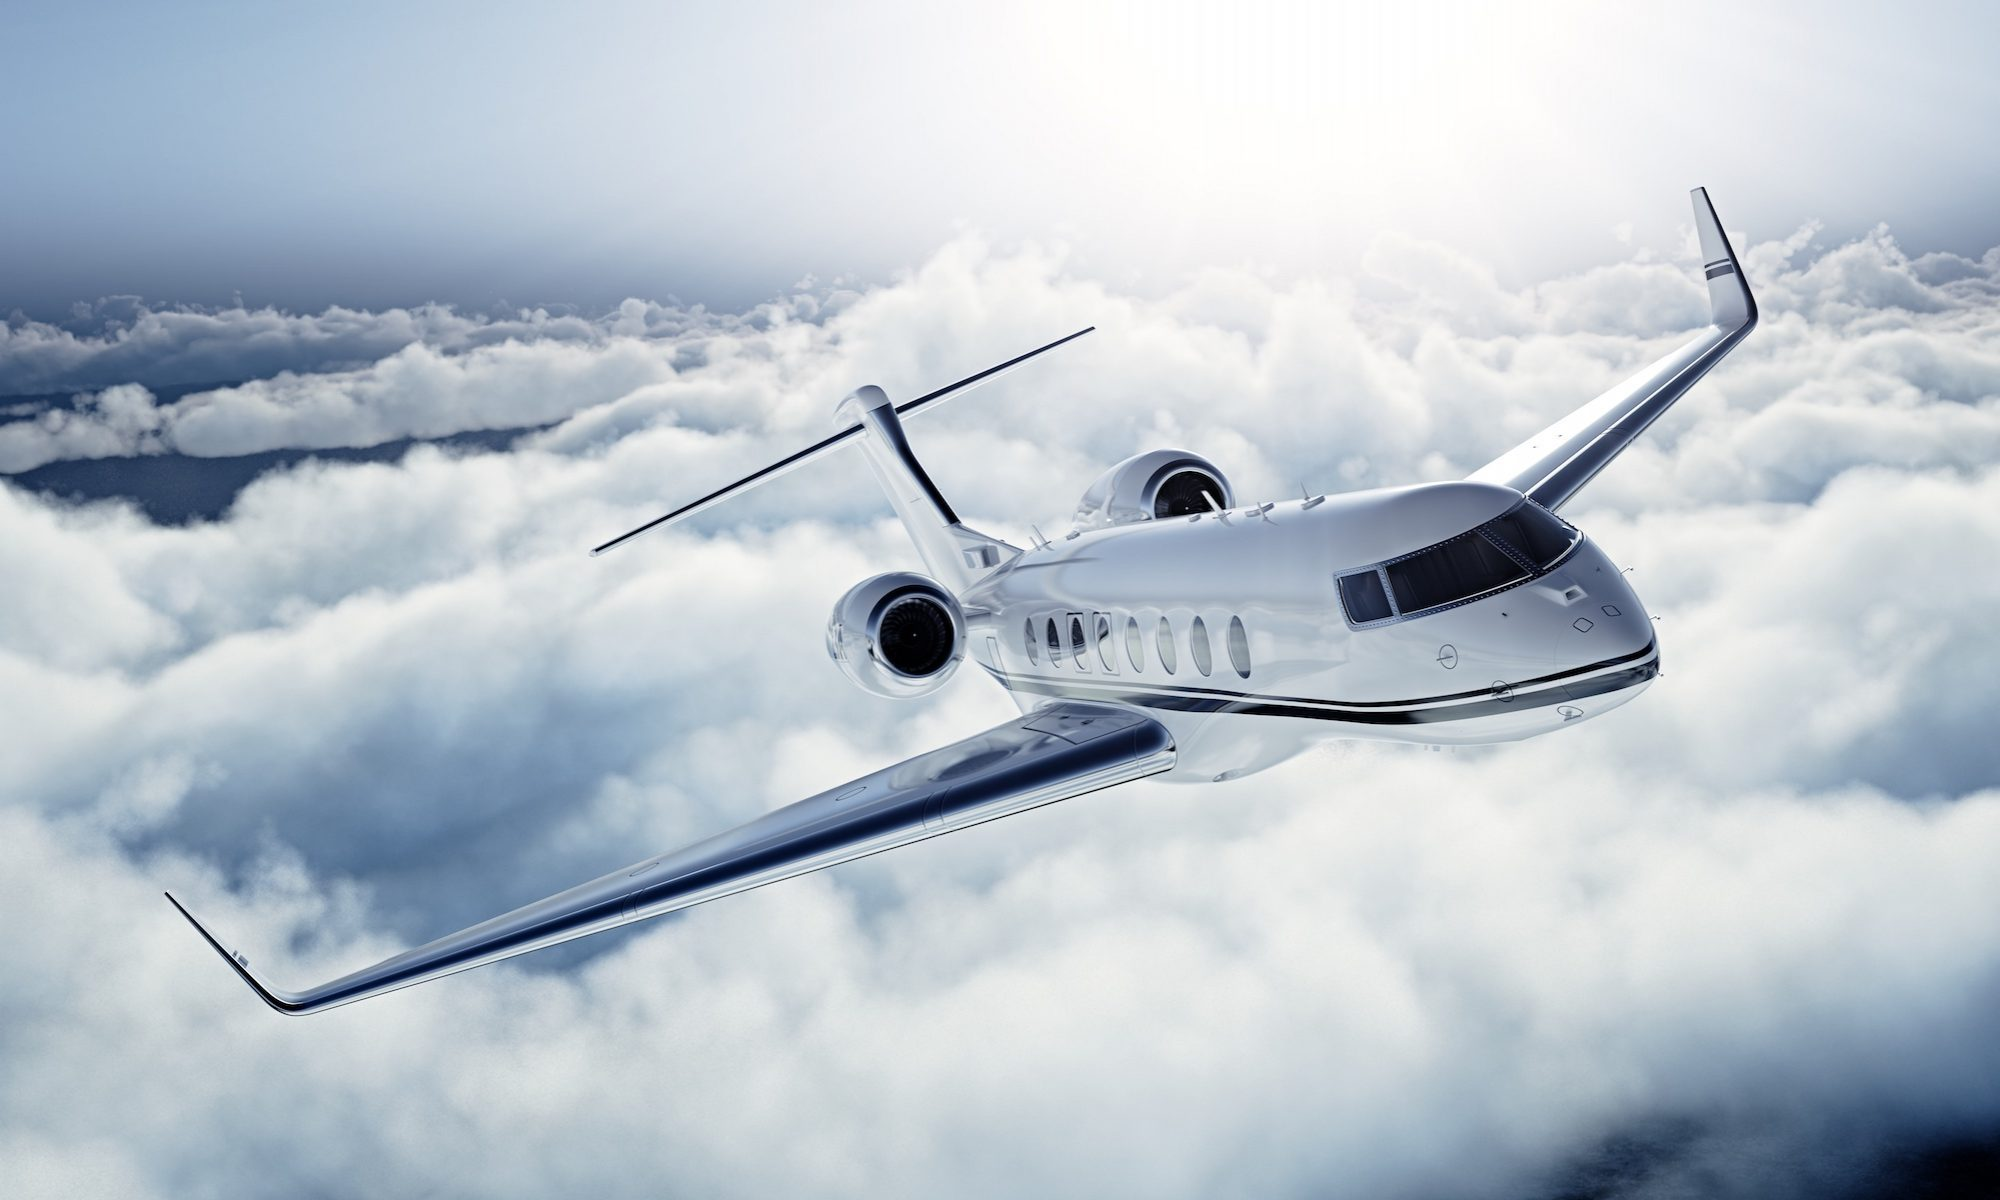 PrivateJet-Charters.com